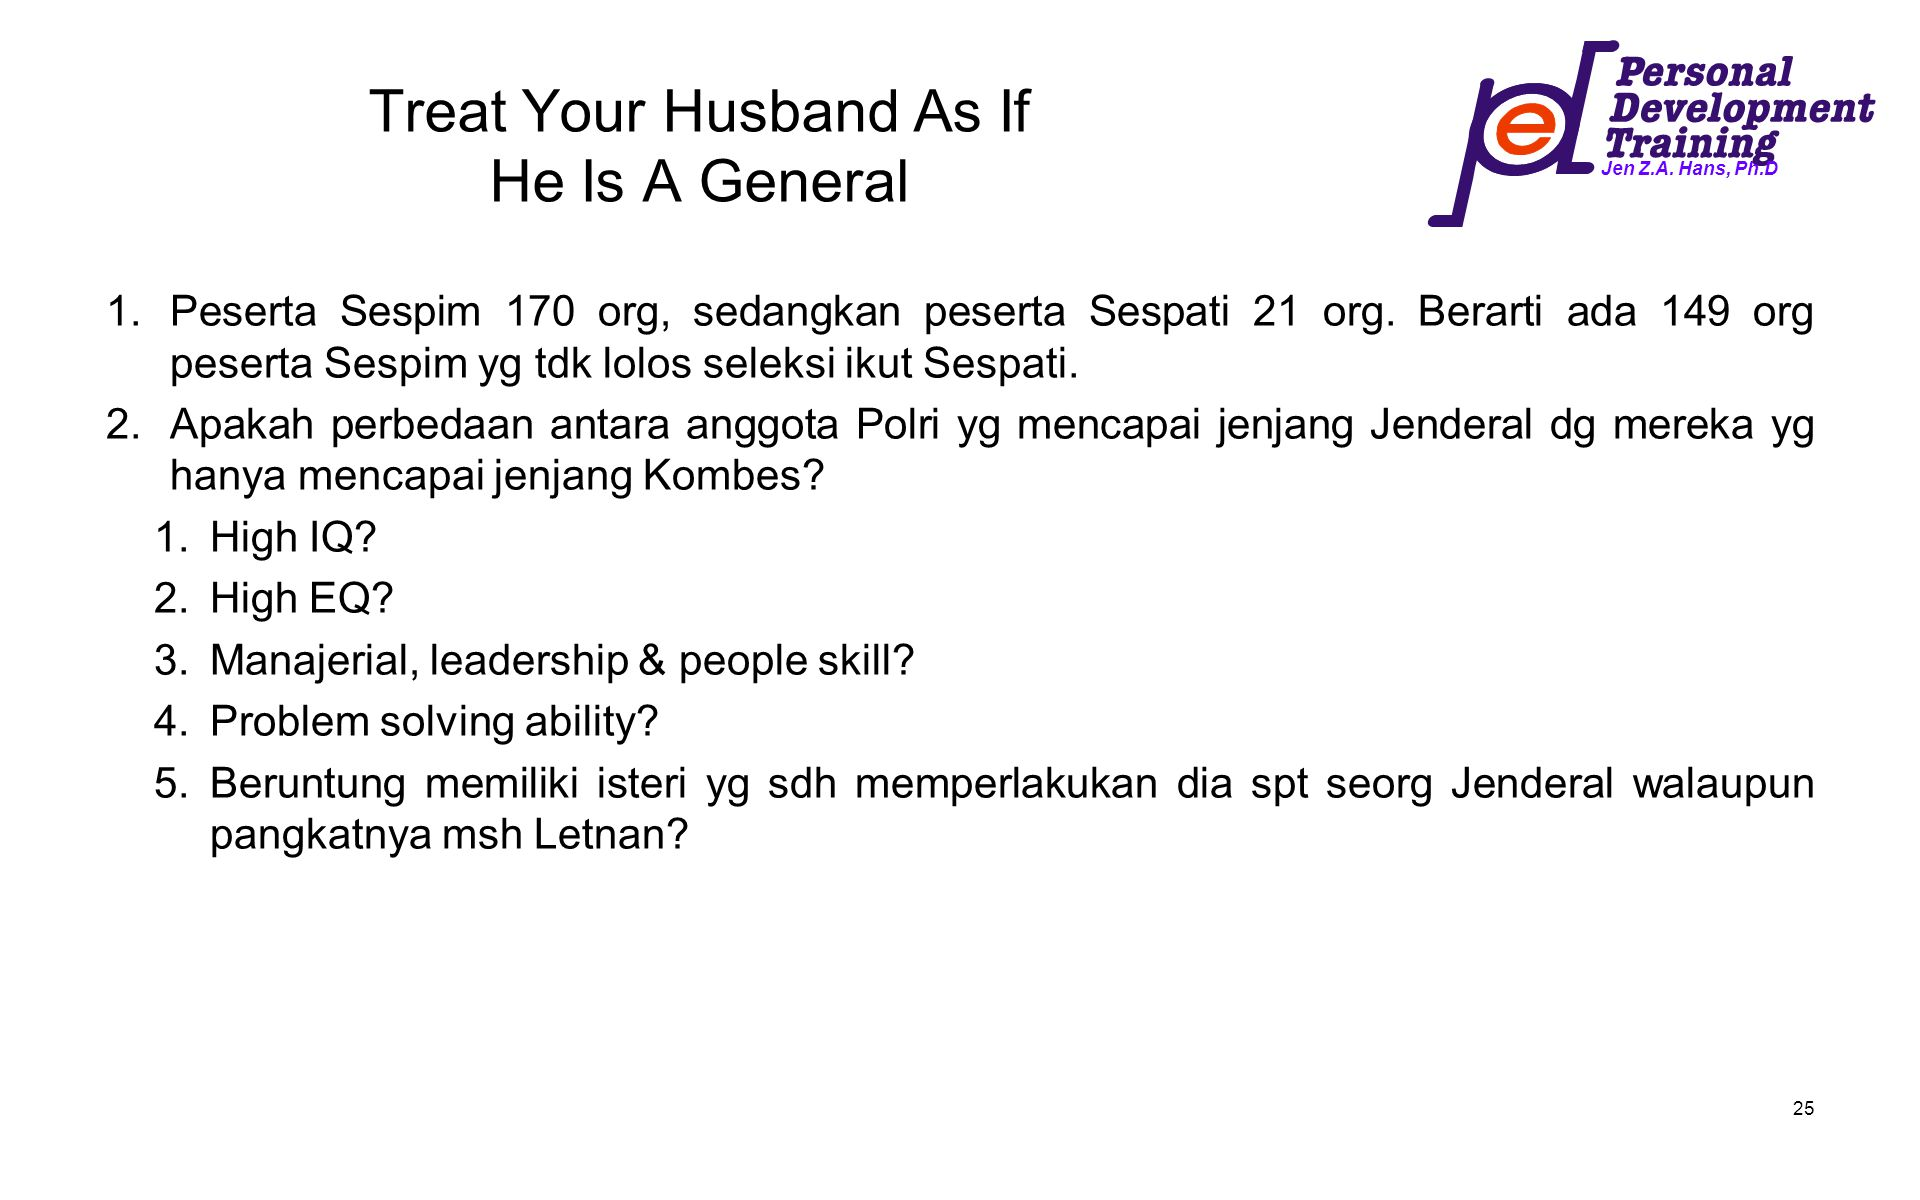 Treat Your Husband As If He Is A General